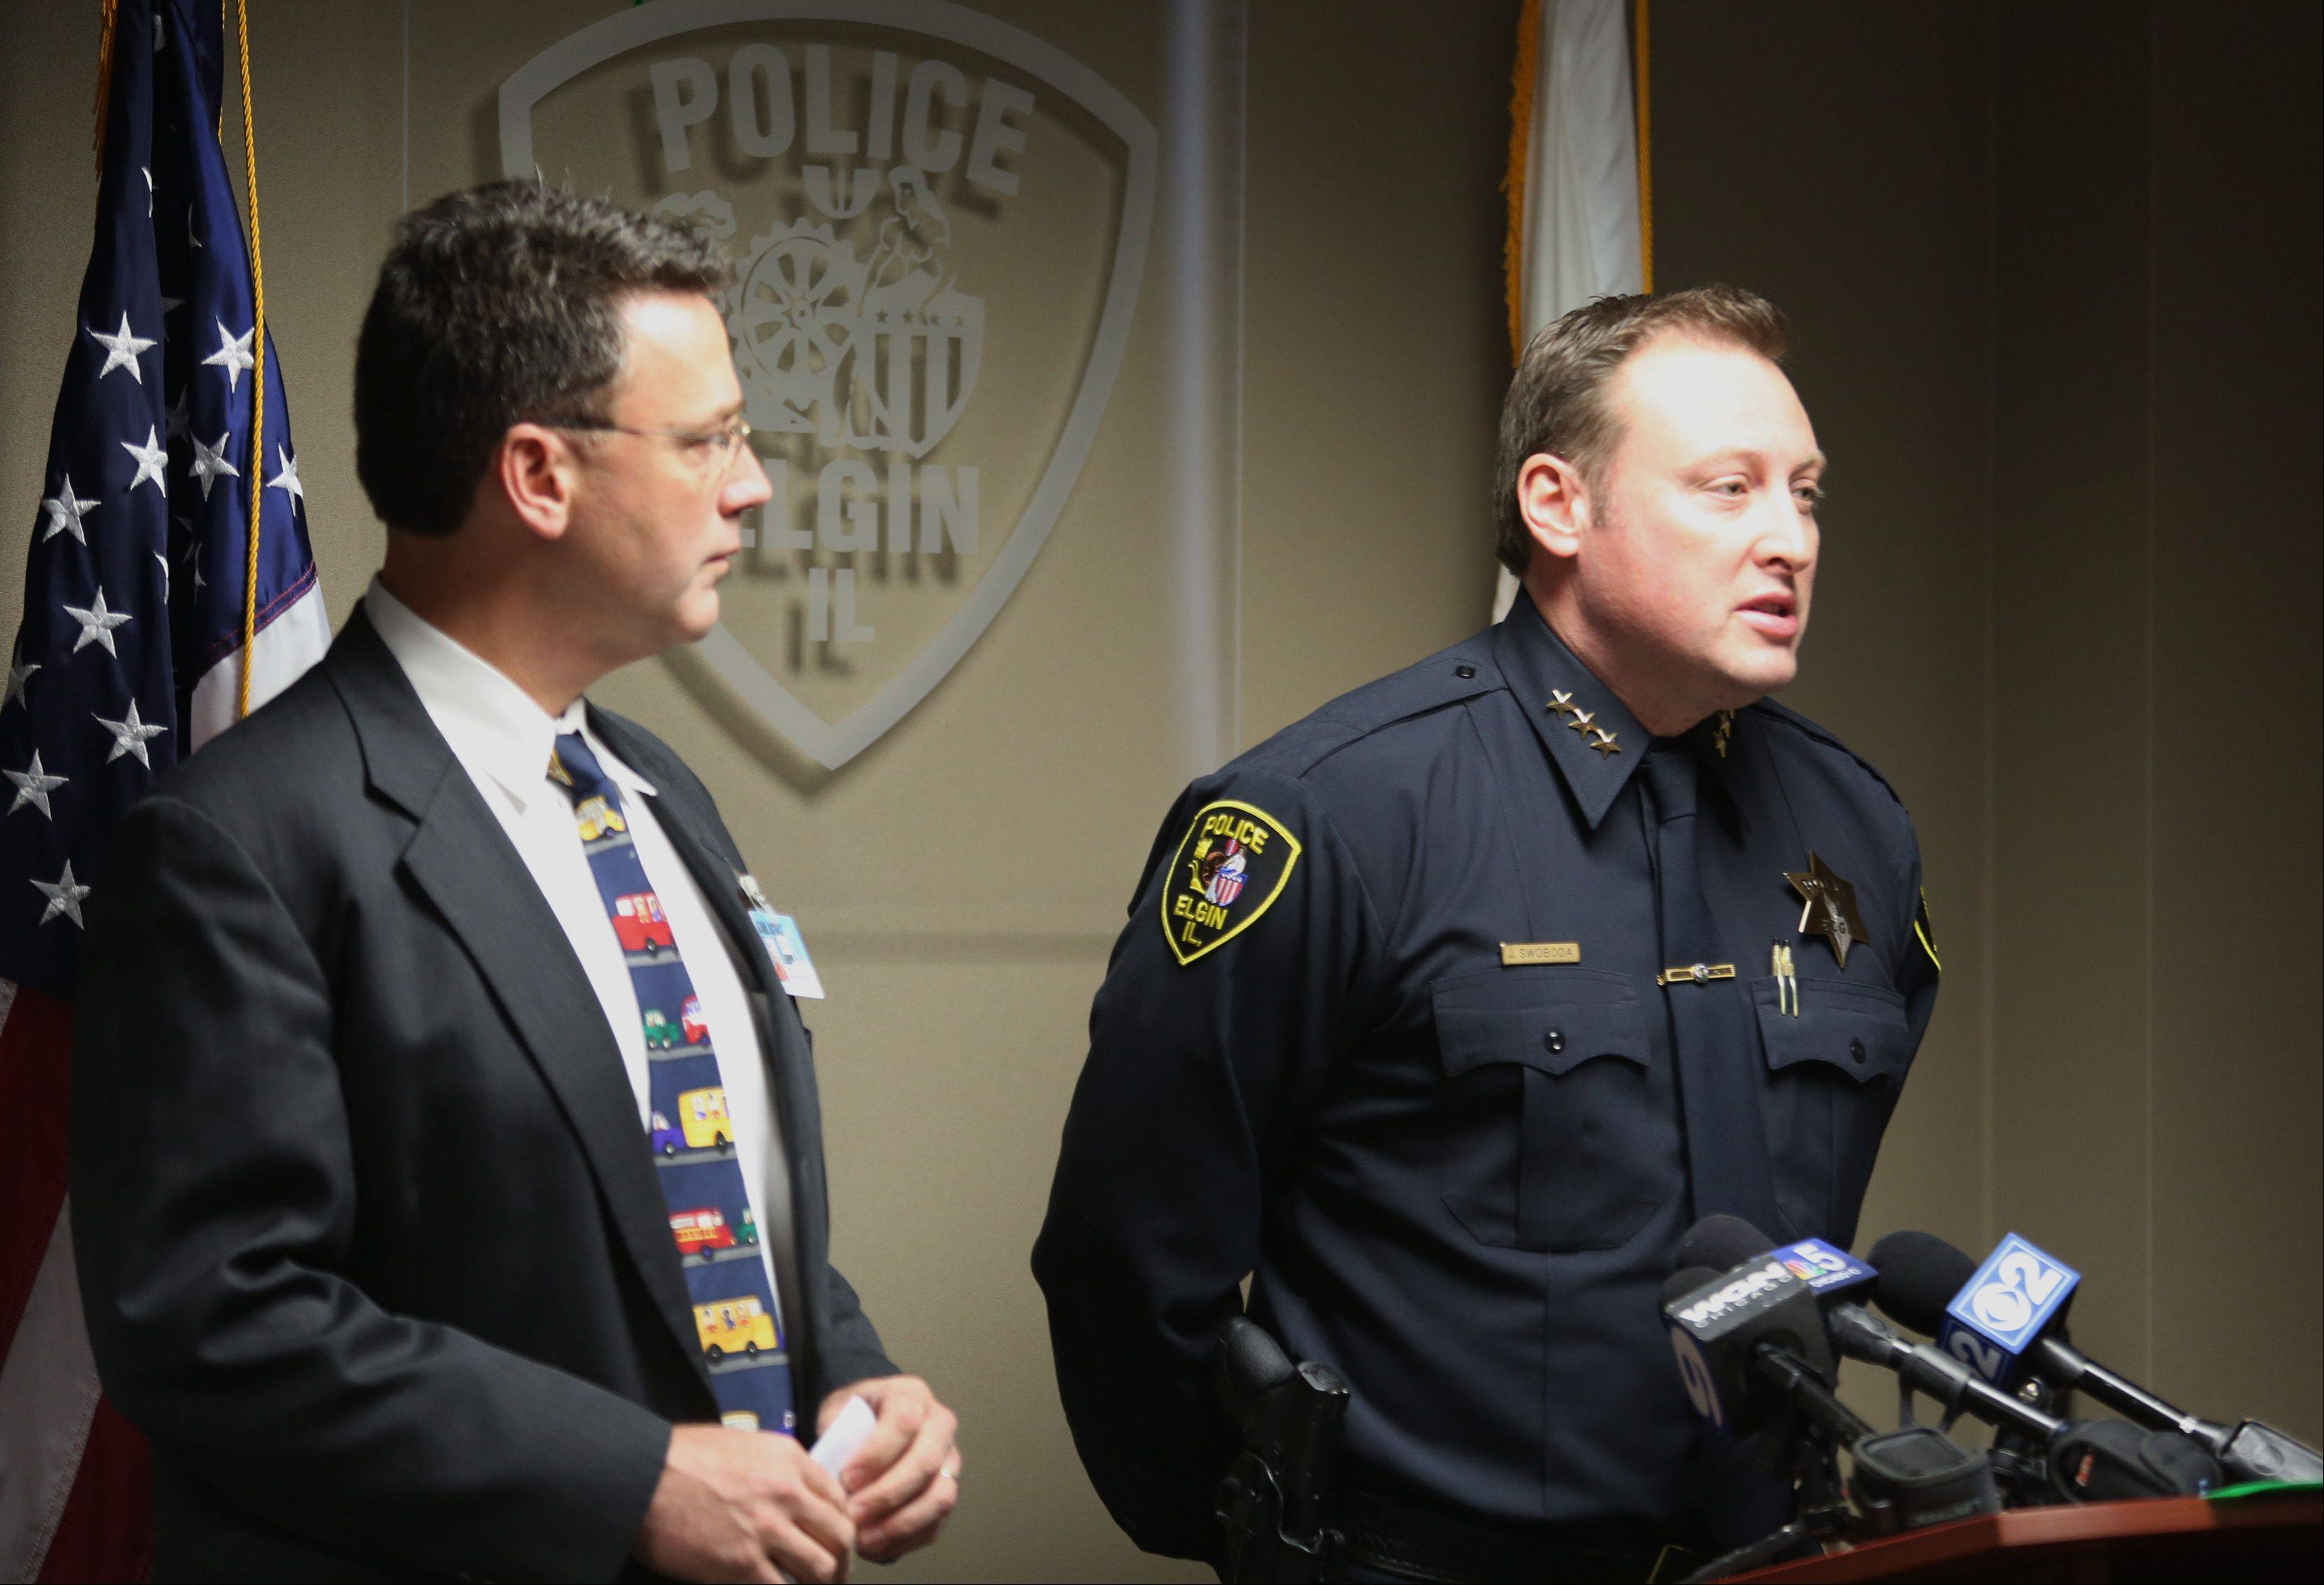 Elgin Police Chief Jeff Swoboda, right, speaks at a news conference Thursday afternoon regarding an incident at Gifford Elementary School after a student was found to have a loaded 9 mm handgun in his backpack. At left is Elgin Area School District U-46 Safety Coordinator John Heiderscheit.